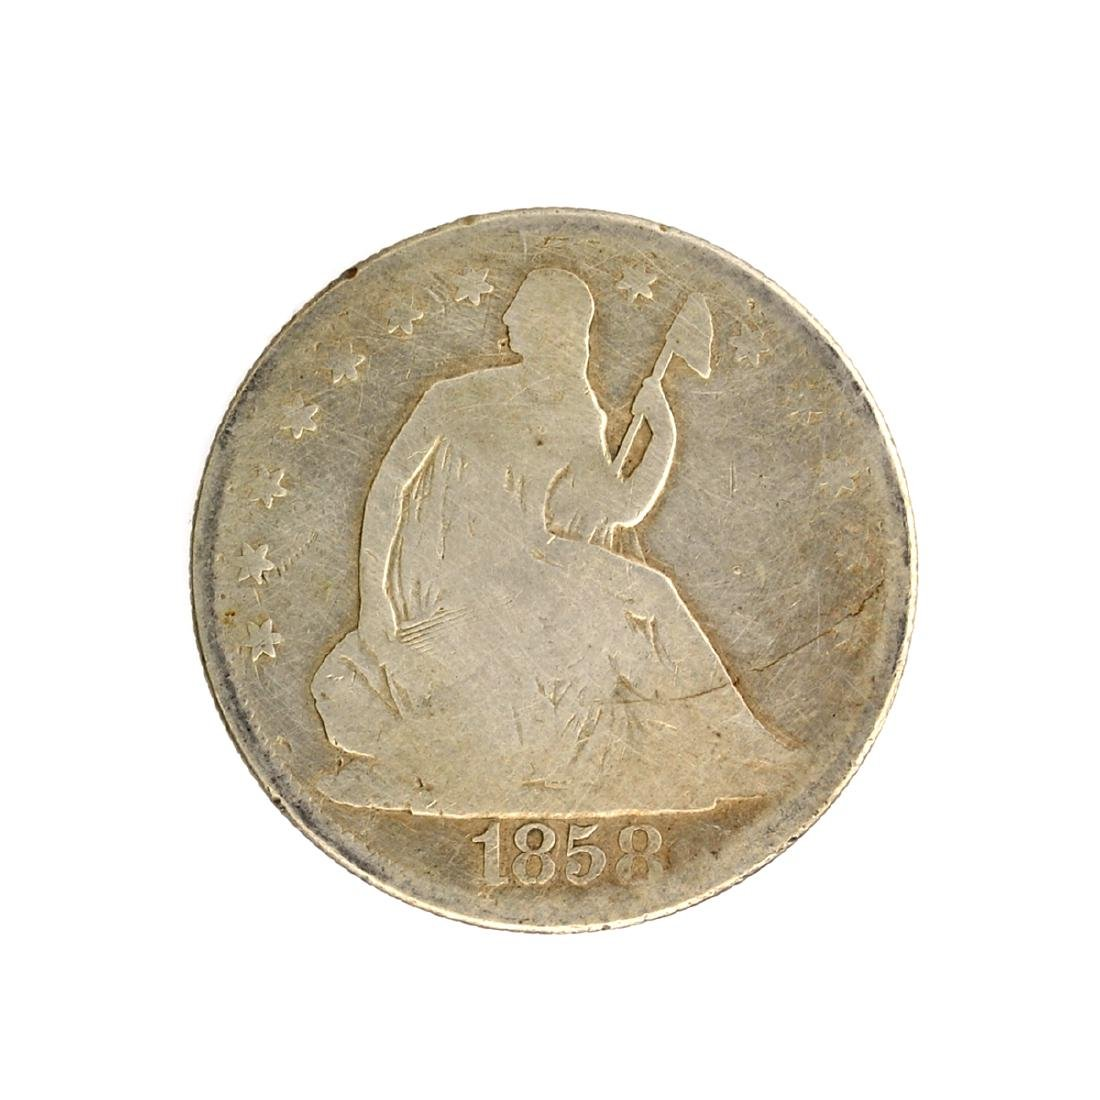 1858 Liberty Seated Half Dollar Coin